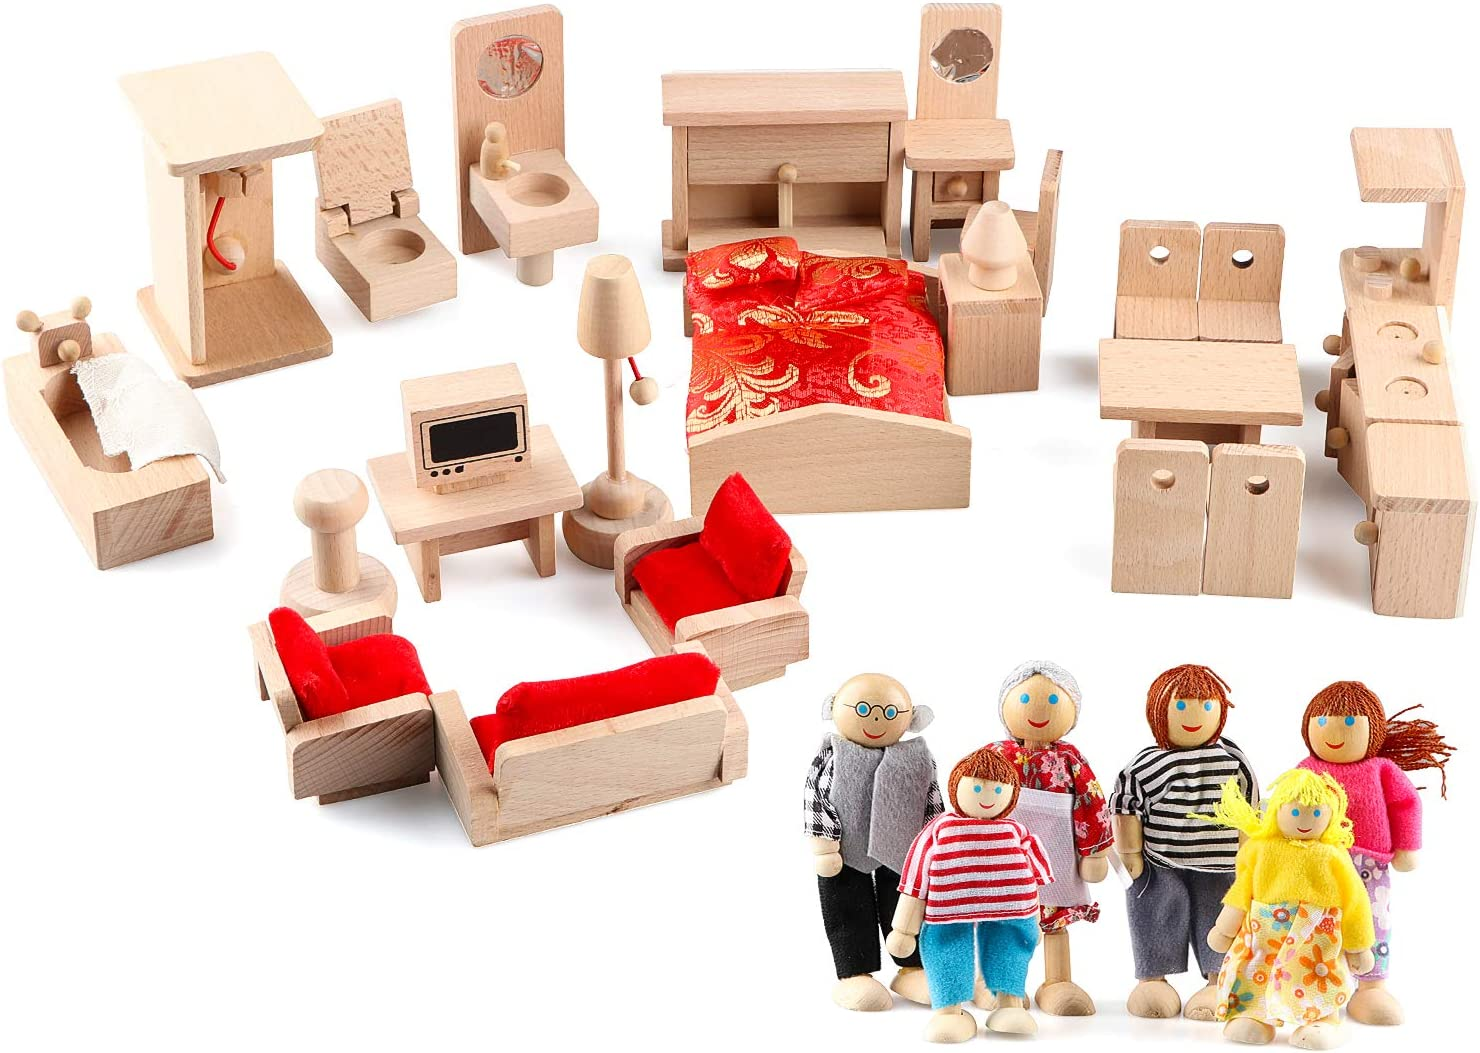 Gemileo 5 Set Dollhouse Furniture Accessories Wooden Bathroom/ Living Room/ Dining Room/ Bedroom/ Kitchen House Doll Decoration Pretend Play Kids Girls Toys